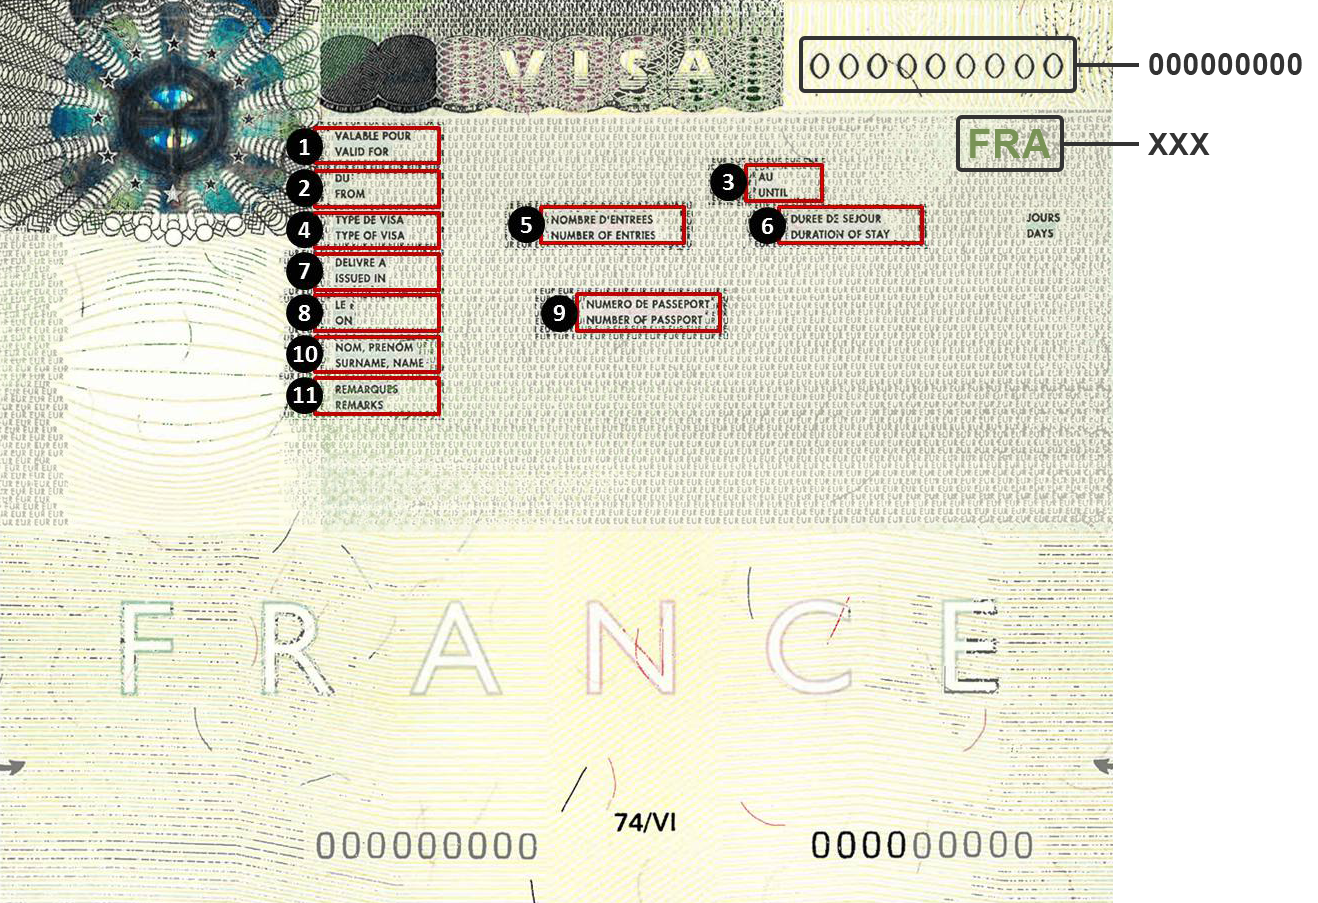 How to get a visa to France